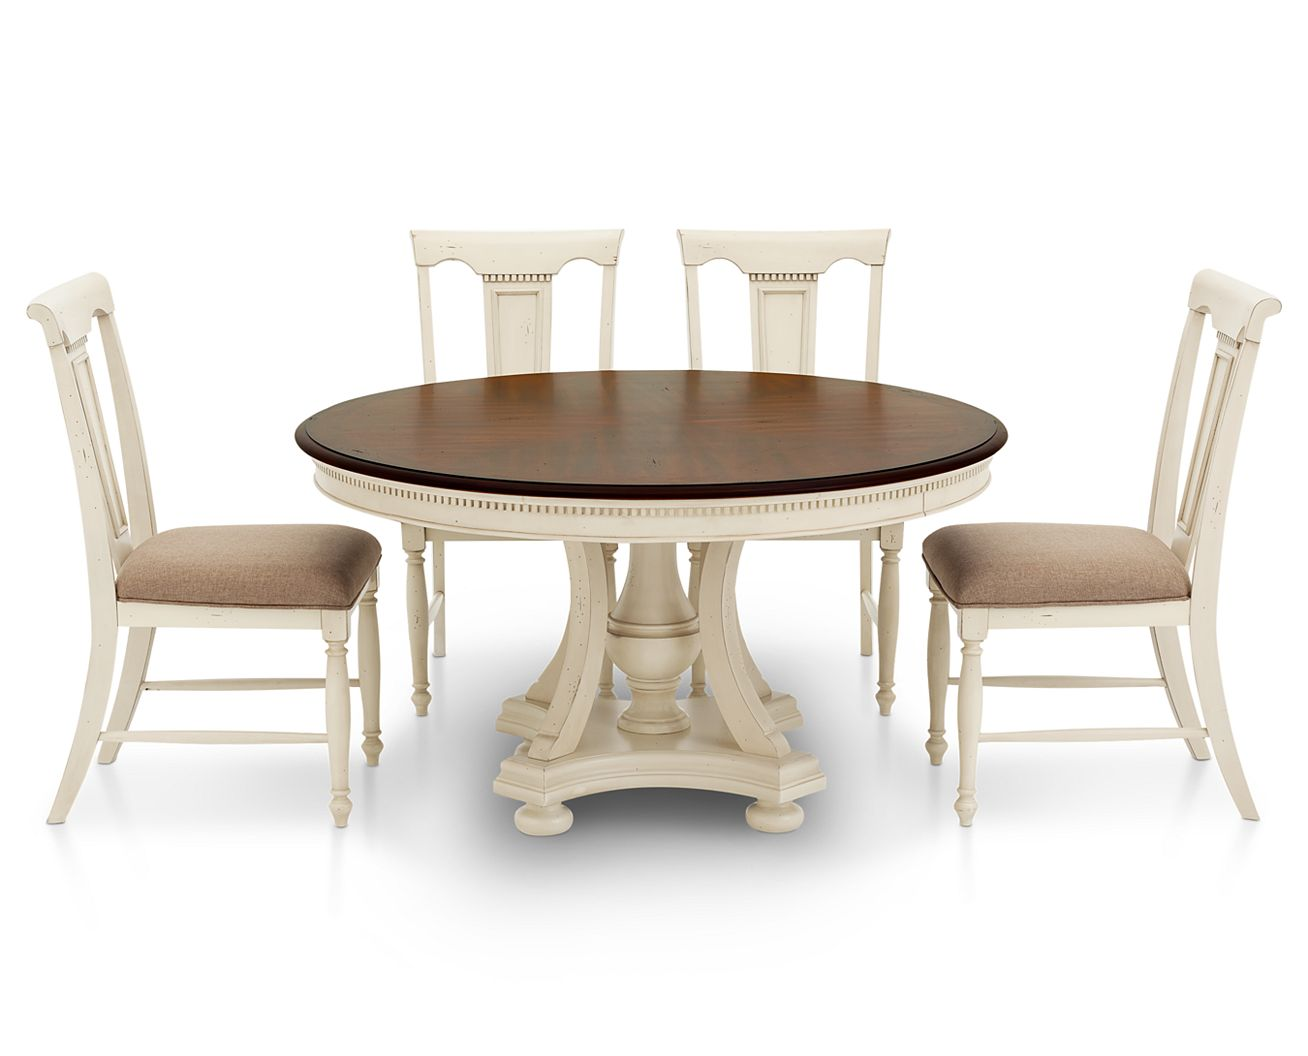 Bridgeport 5 Pc. Round Dining Room Set - Furniture Row